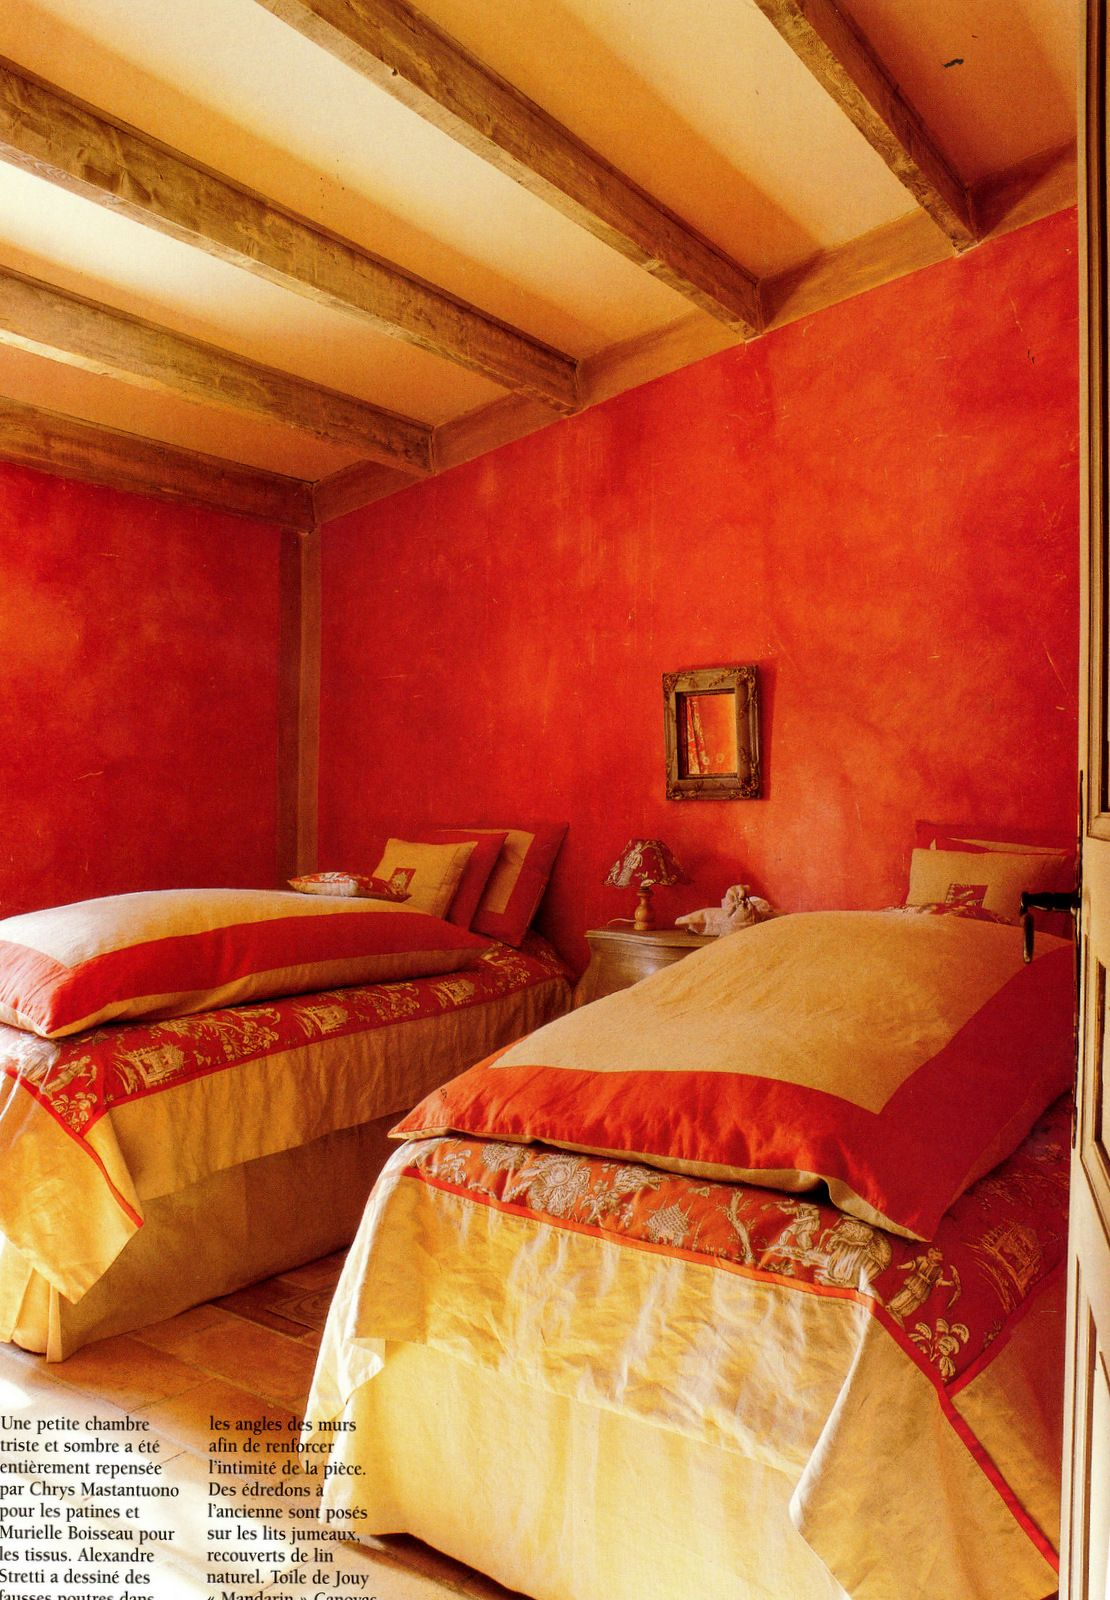 rustic style bedroom in provence france with distressed persimmon